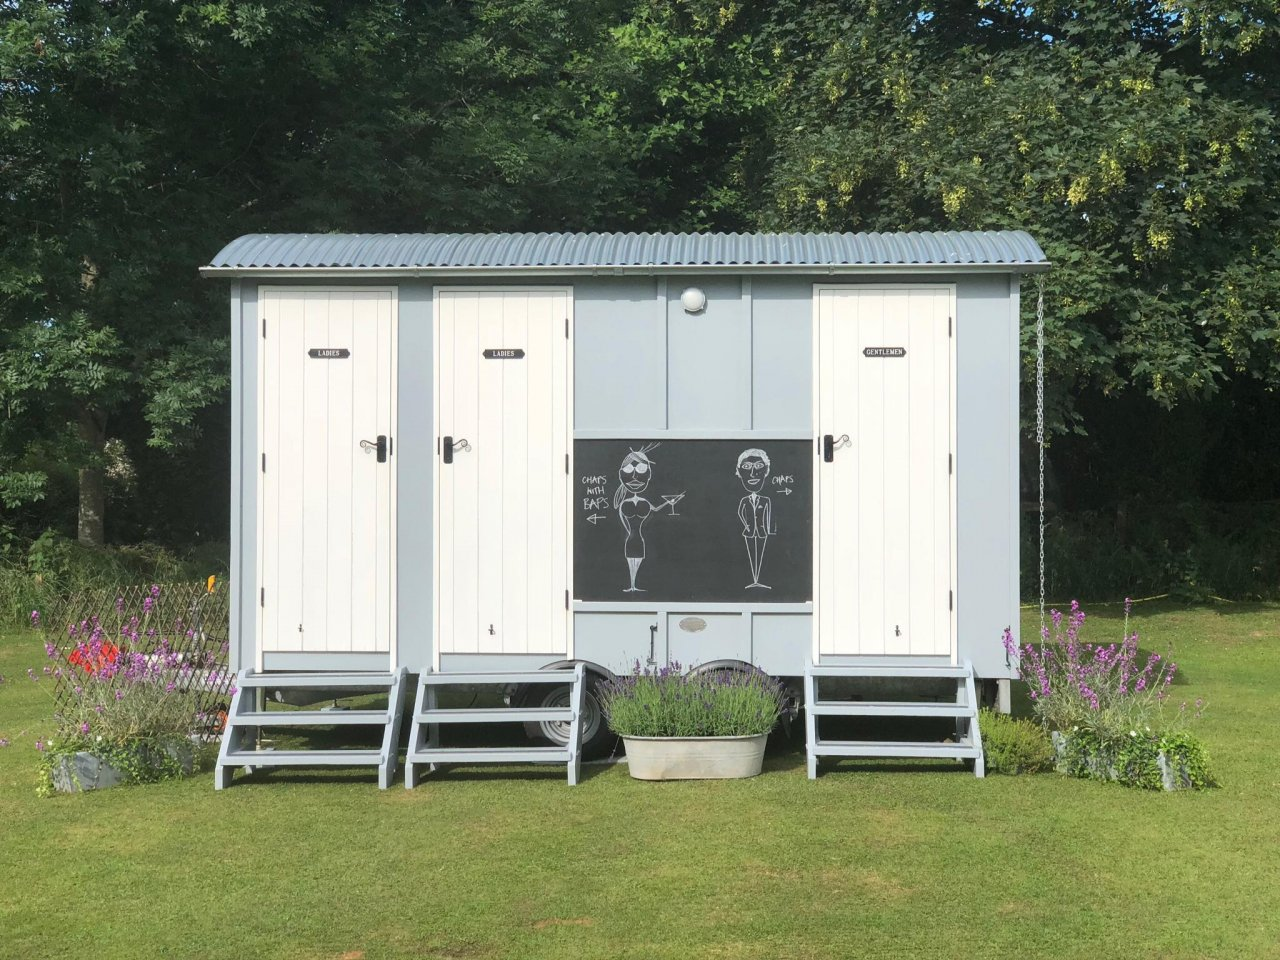 Glamping wedding toilets